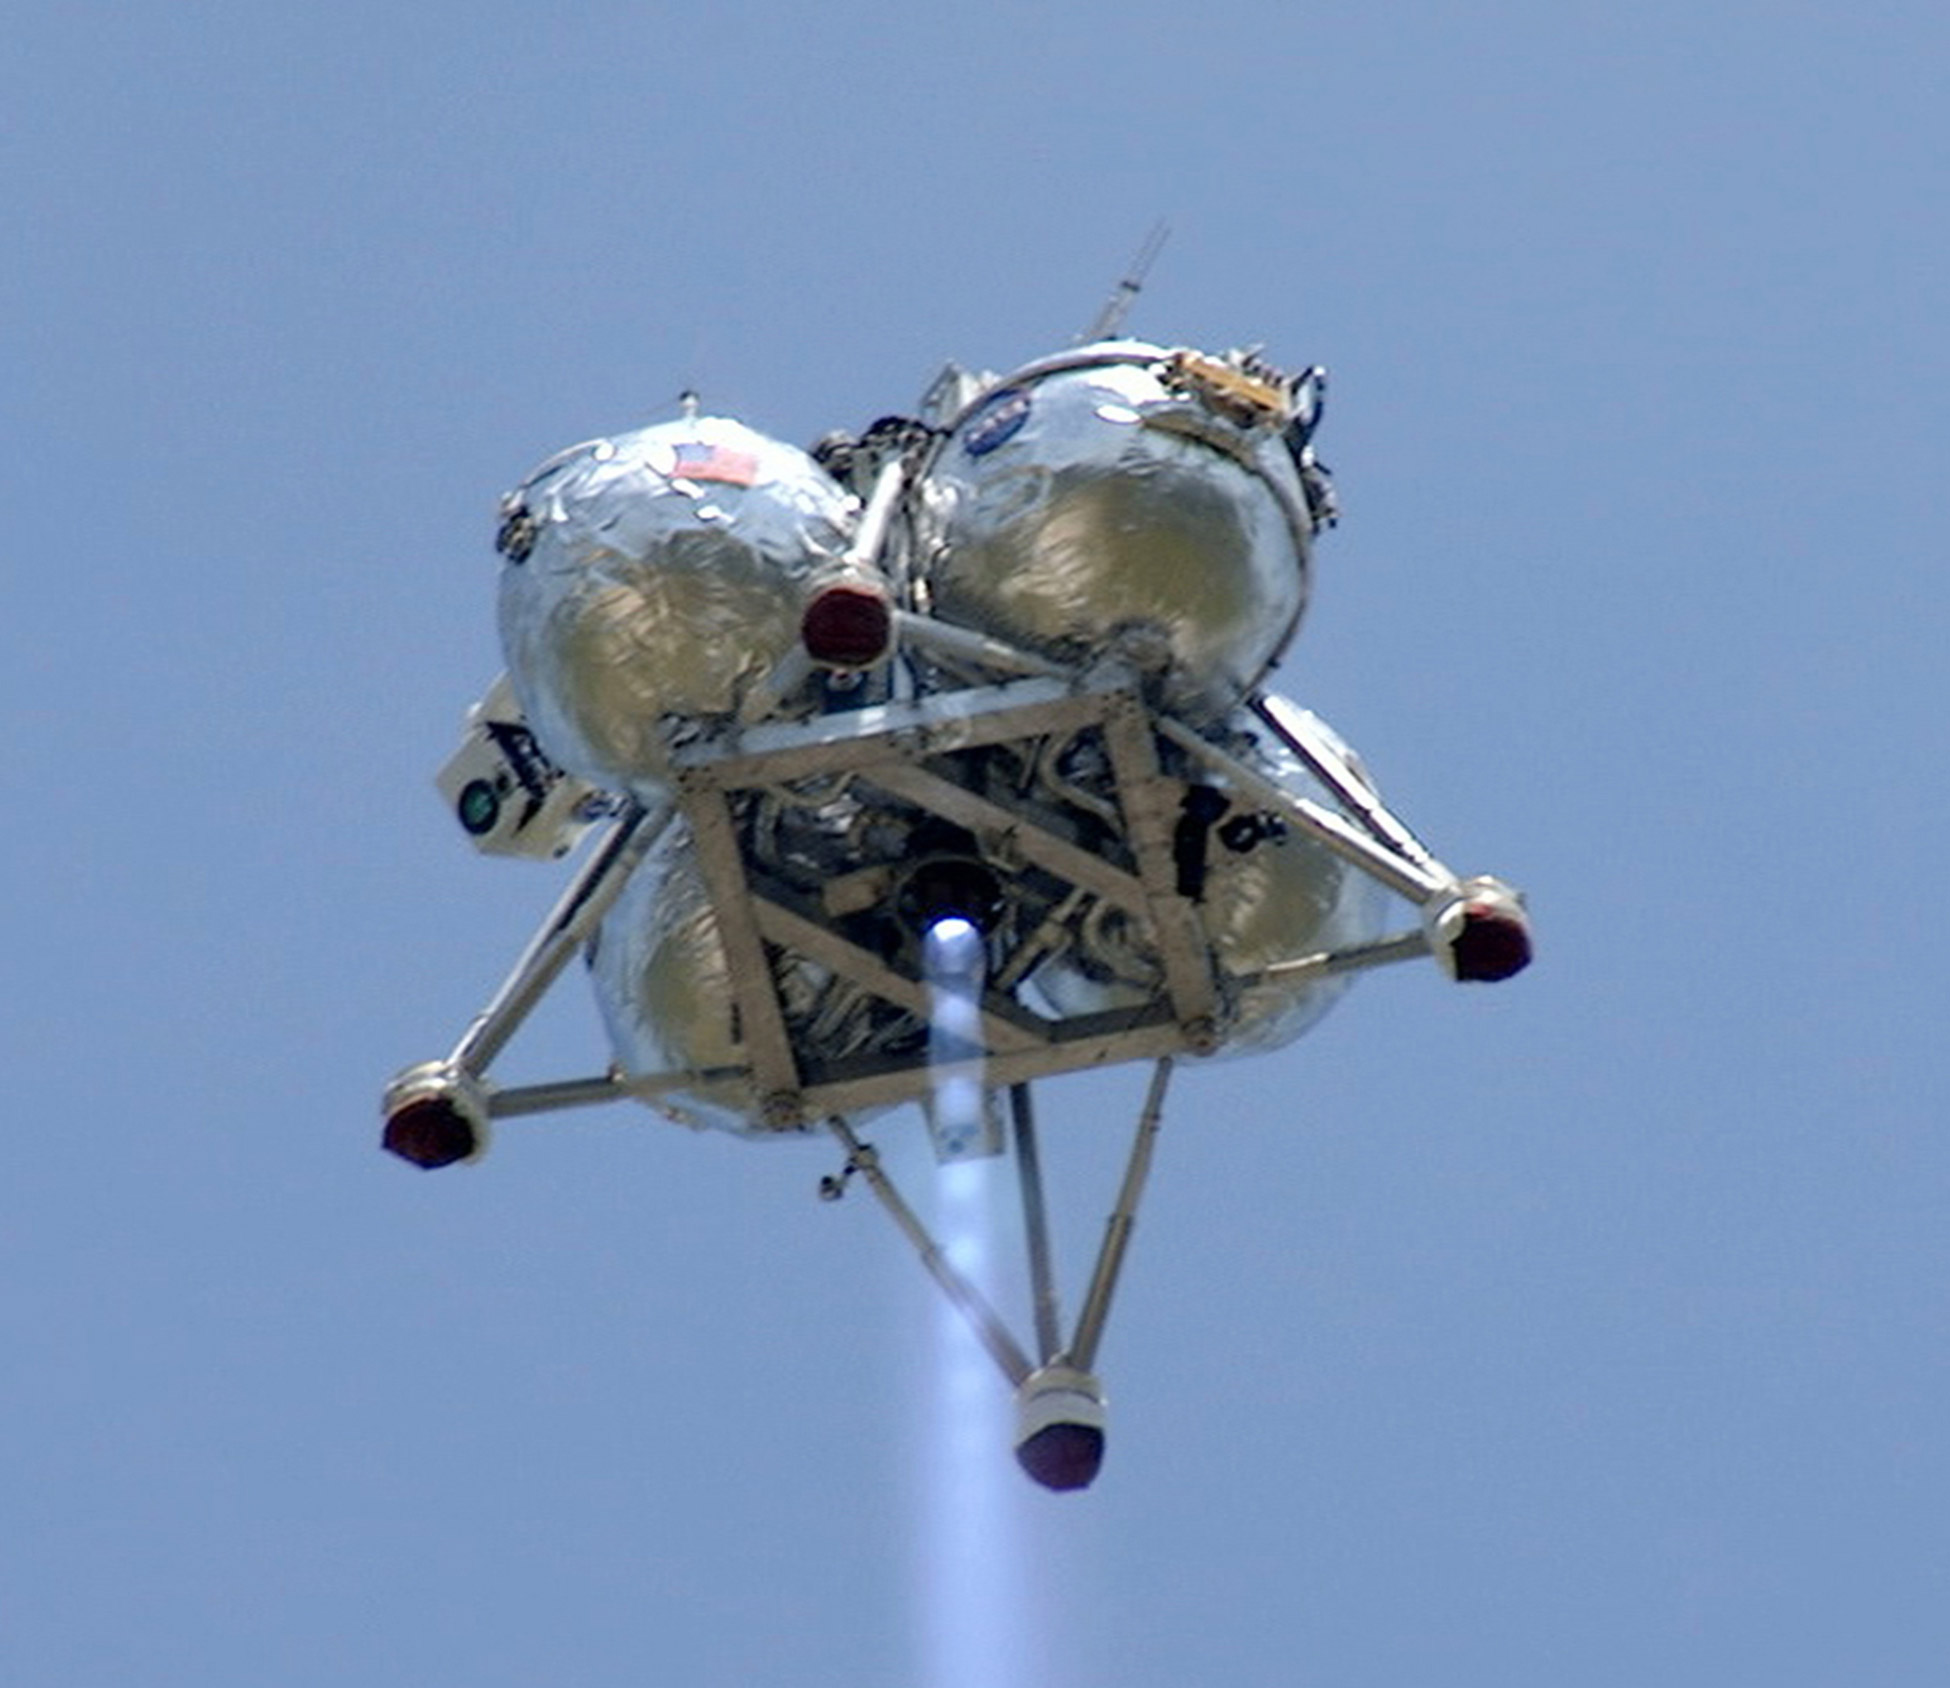 NASA's Project Morpheus prototype lander performs a free-flight test from a launch pad at the north end of the Shuttle Landing Facility at NASA's Kennedy Space Center in Florida. Credit: NASA/Mike Chambers and Chris Chamberland